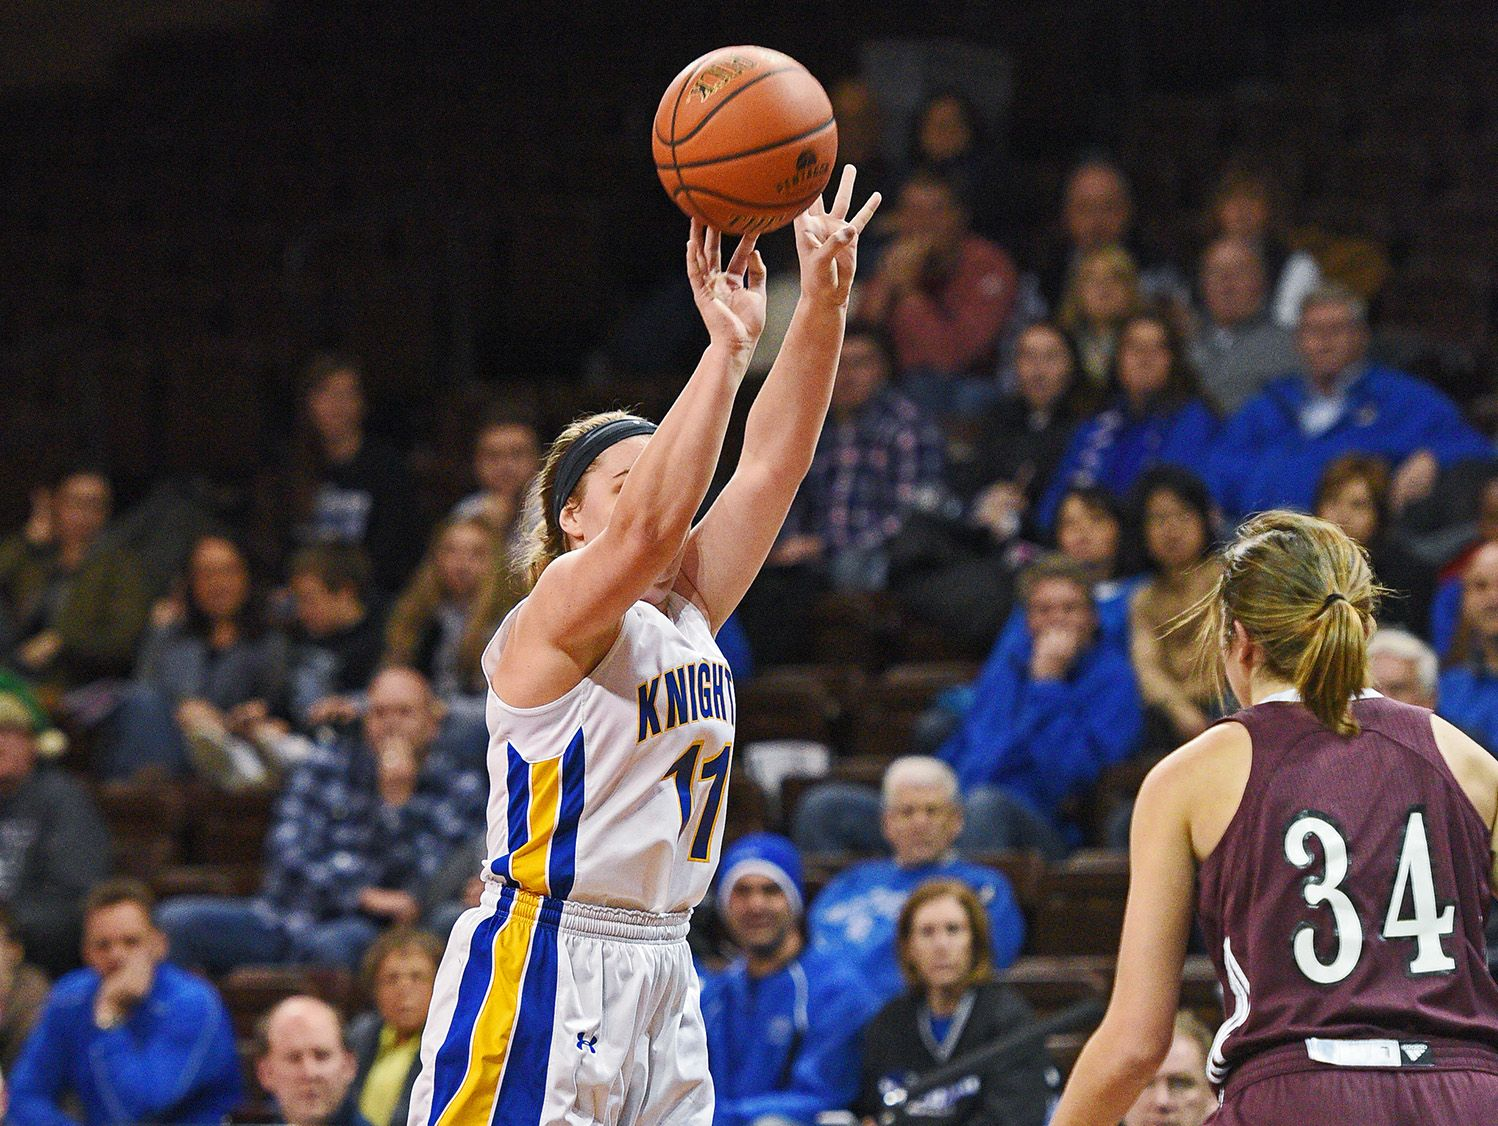 O'Gorman's McKenzie Hermanson (11) takes a shot during a game against Western Christian during the Edith Sanford Breast Center Girls Pentagon Classic Saturday, Dec. 17, 2016, at the Sanford Pentagon in Sioux Falls.